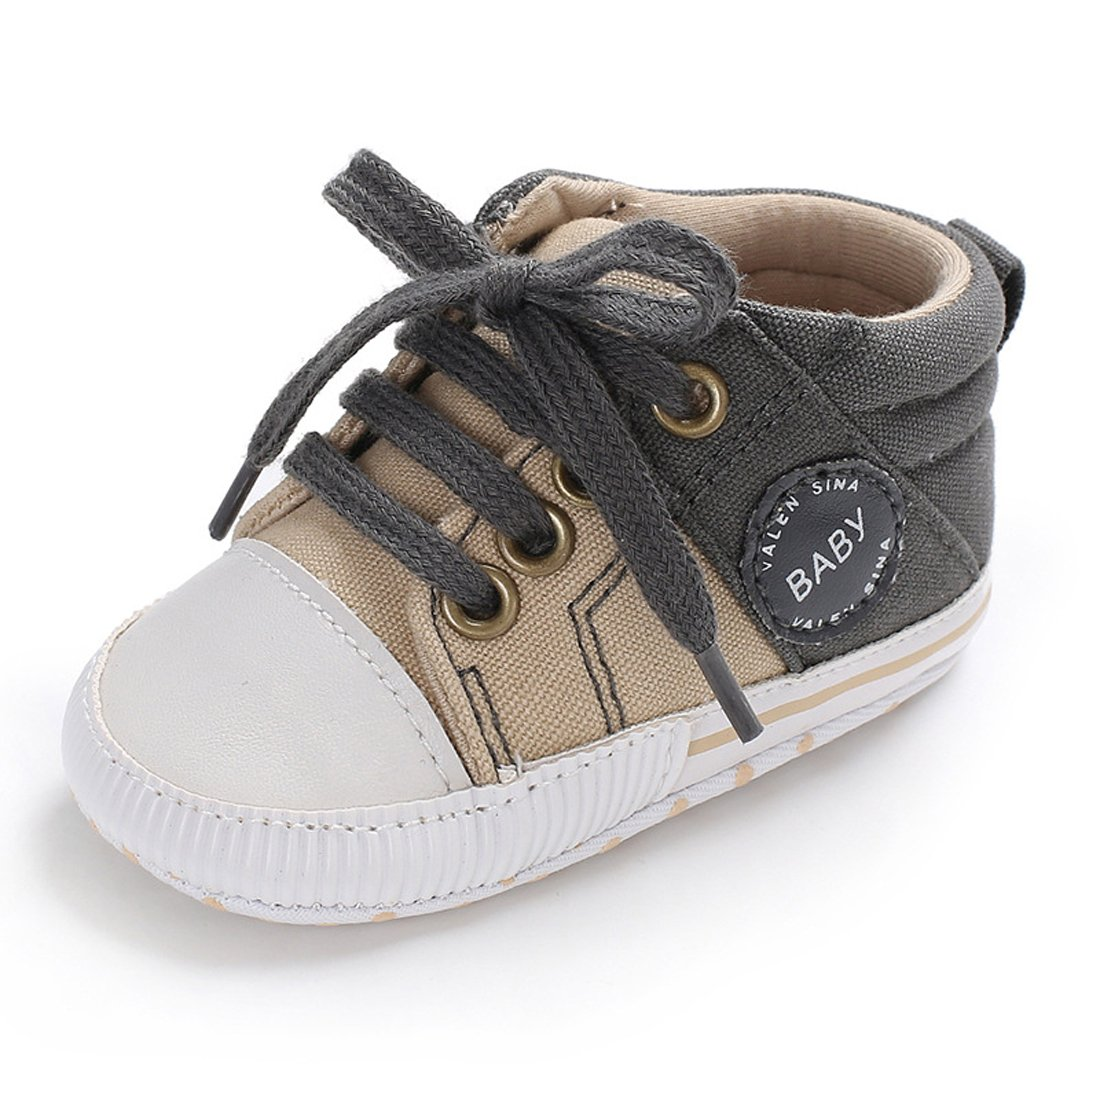 Tutoo Unisex Baby Boys Girls Soft Anti-Slip Sole Sneakers Newborn Infant First Walkers Canvas Denim Shoes (12-18 Months, A-Grey)